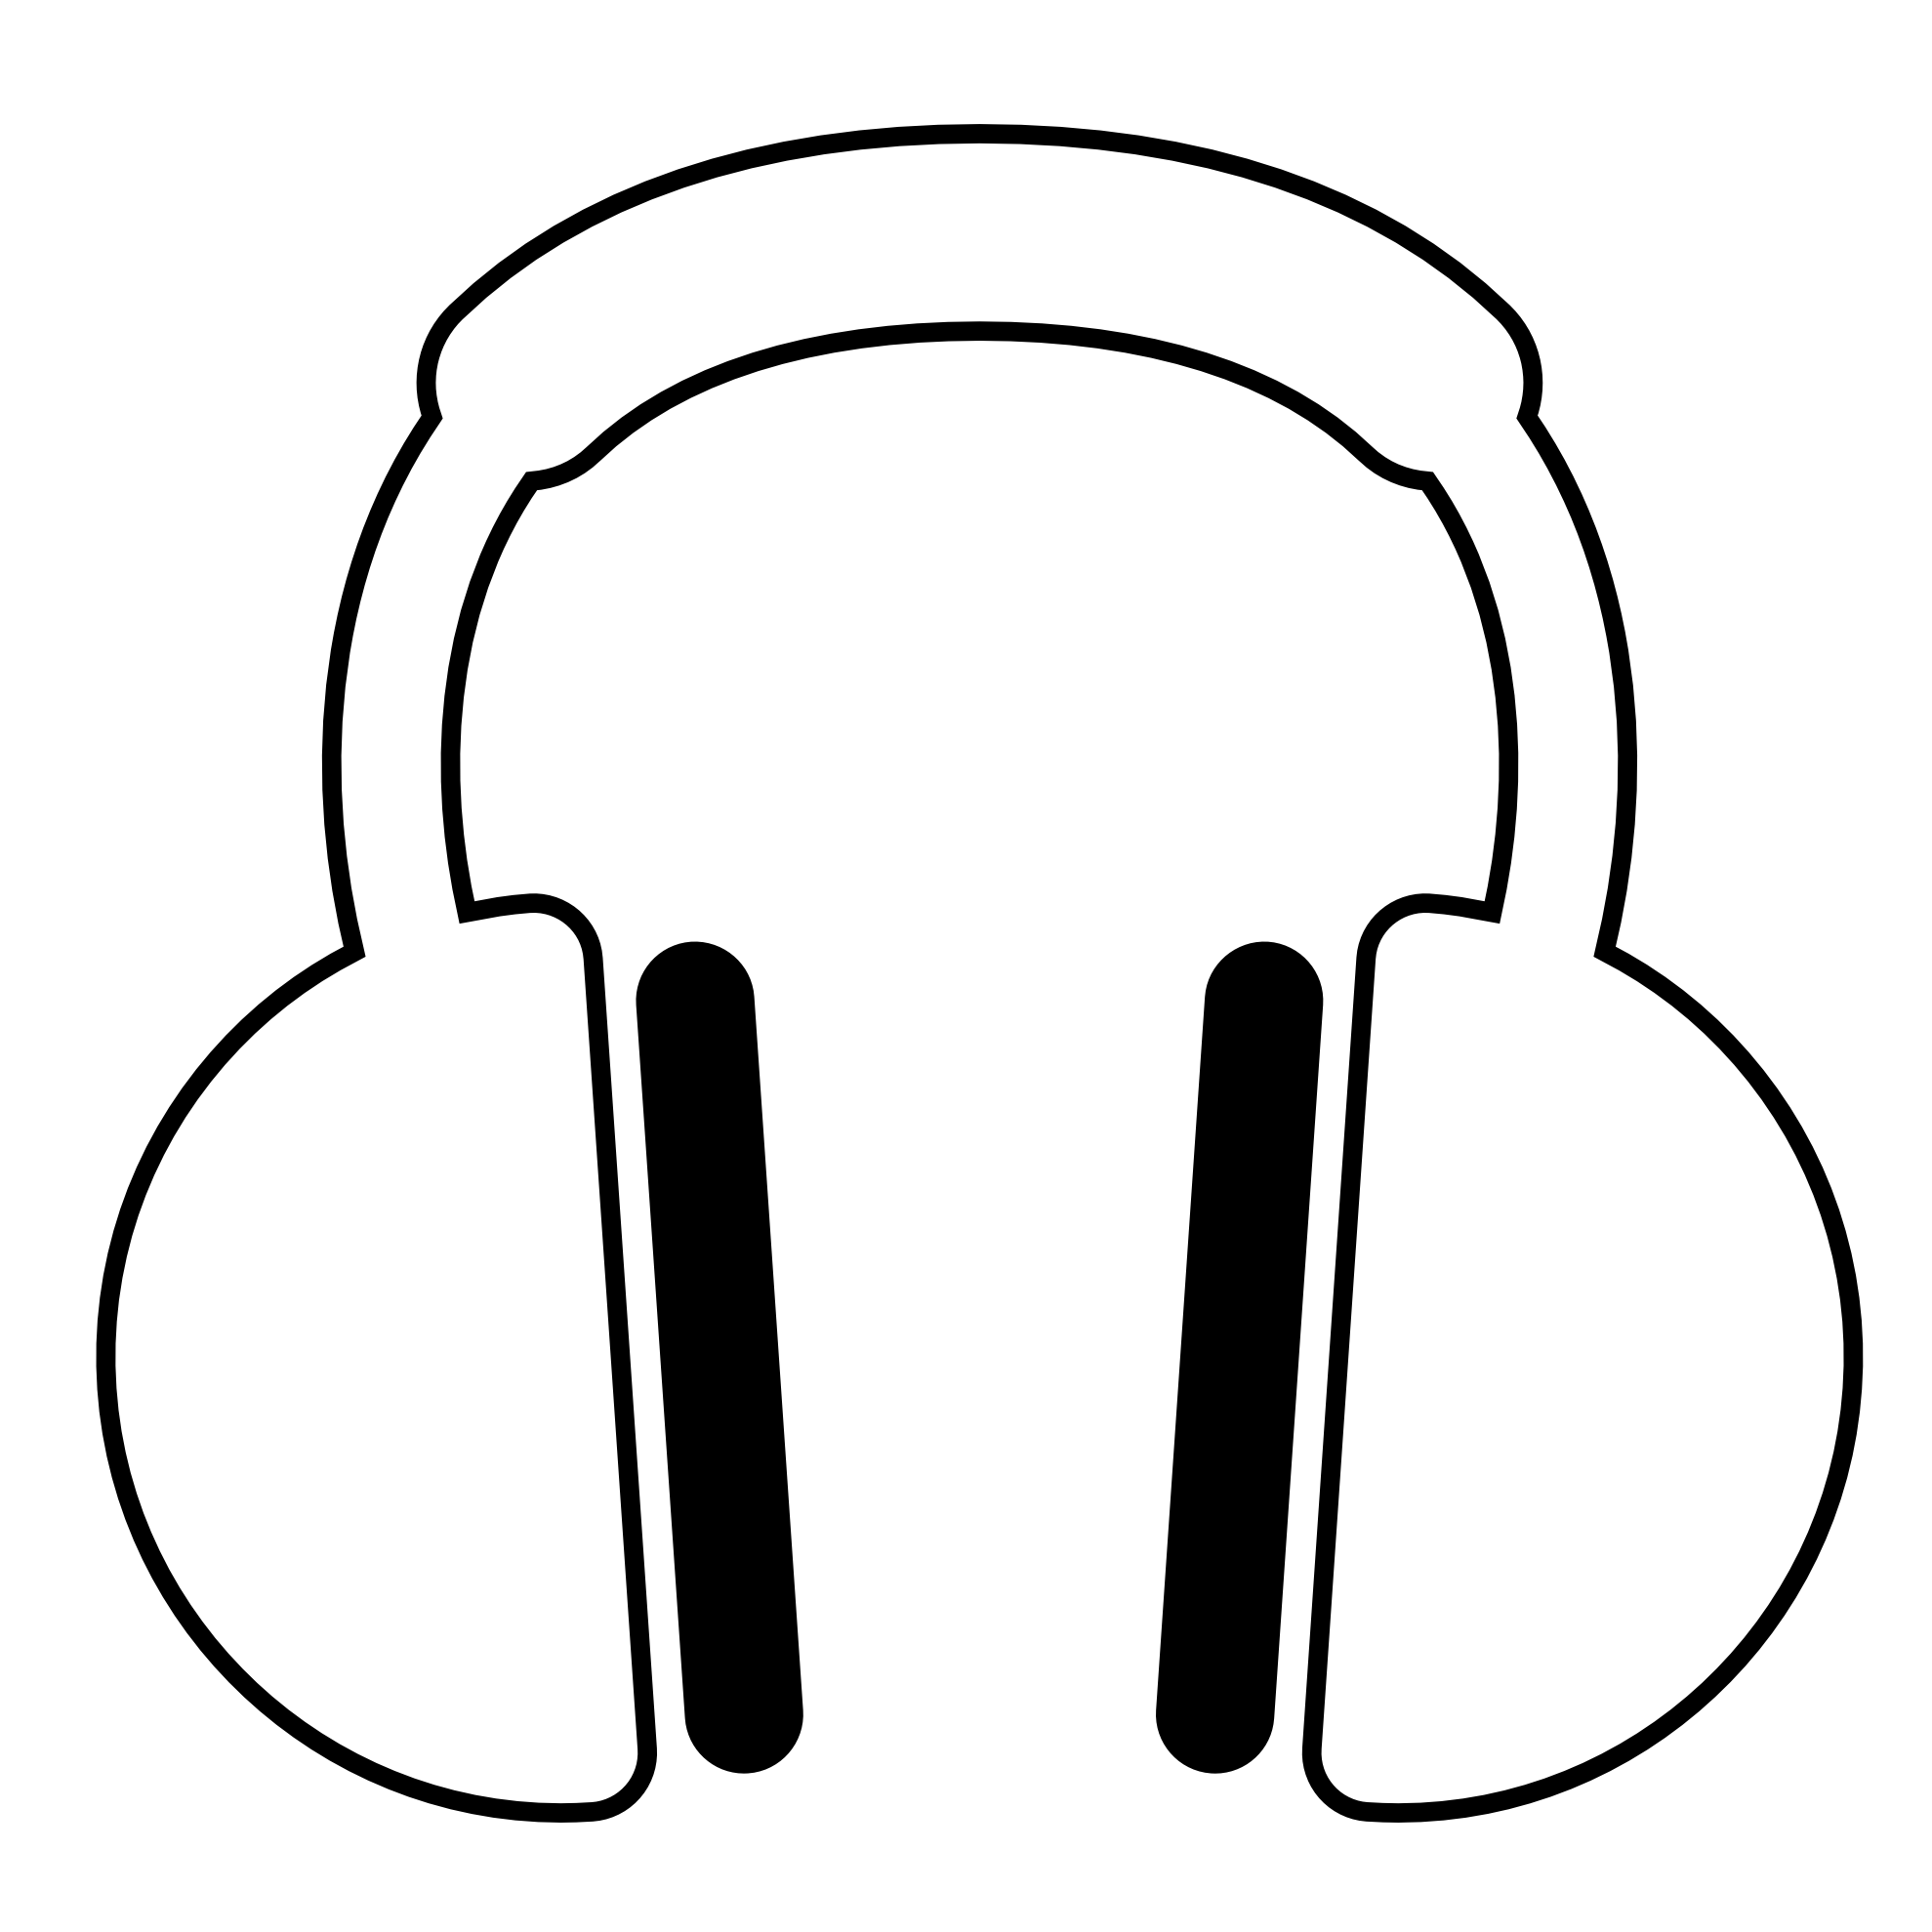 graphic library download Listening To Music Clipart Black And White